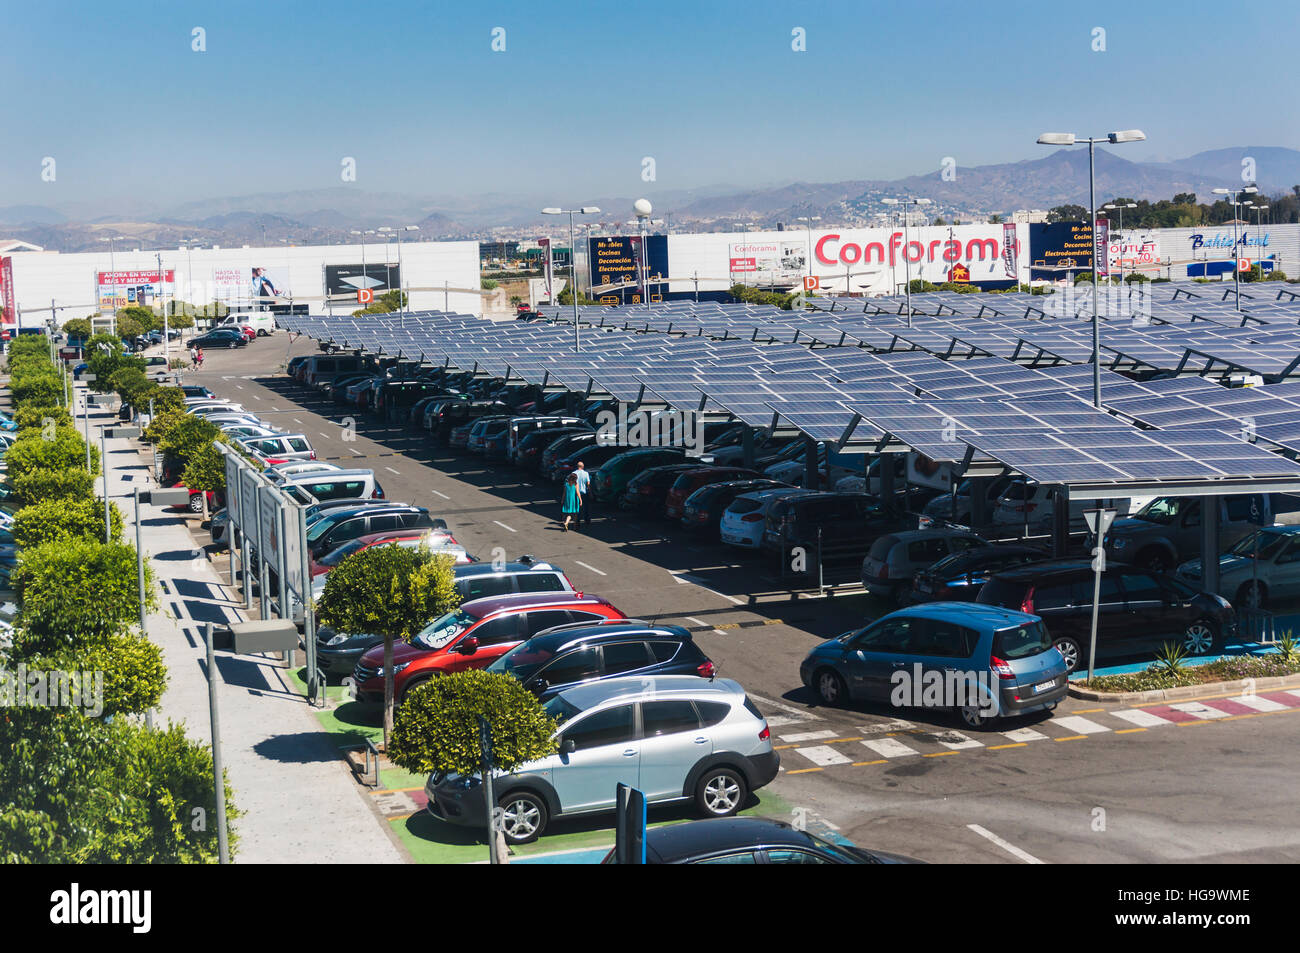 Used Ikea solar panels used as roofs to shade parking bays in ikea car park